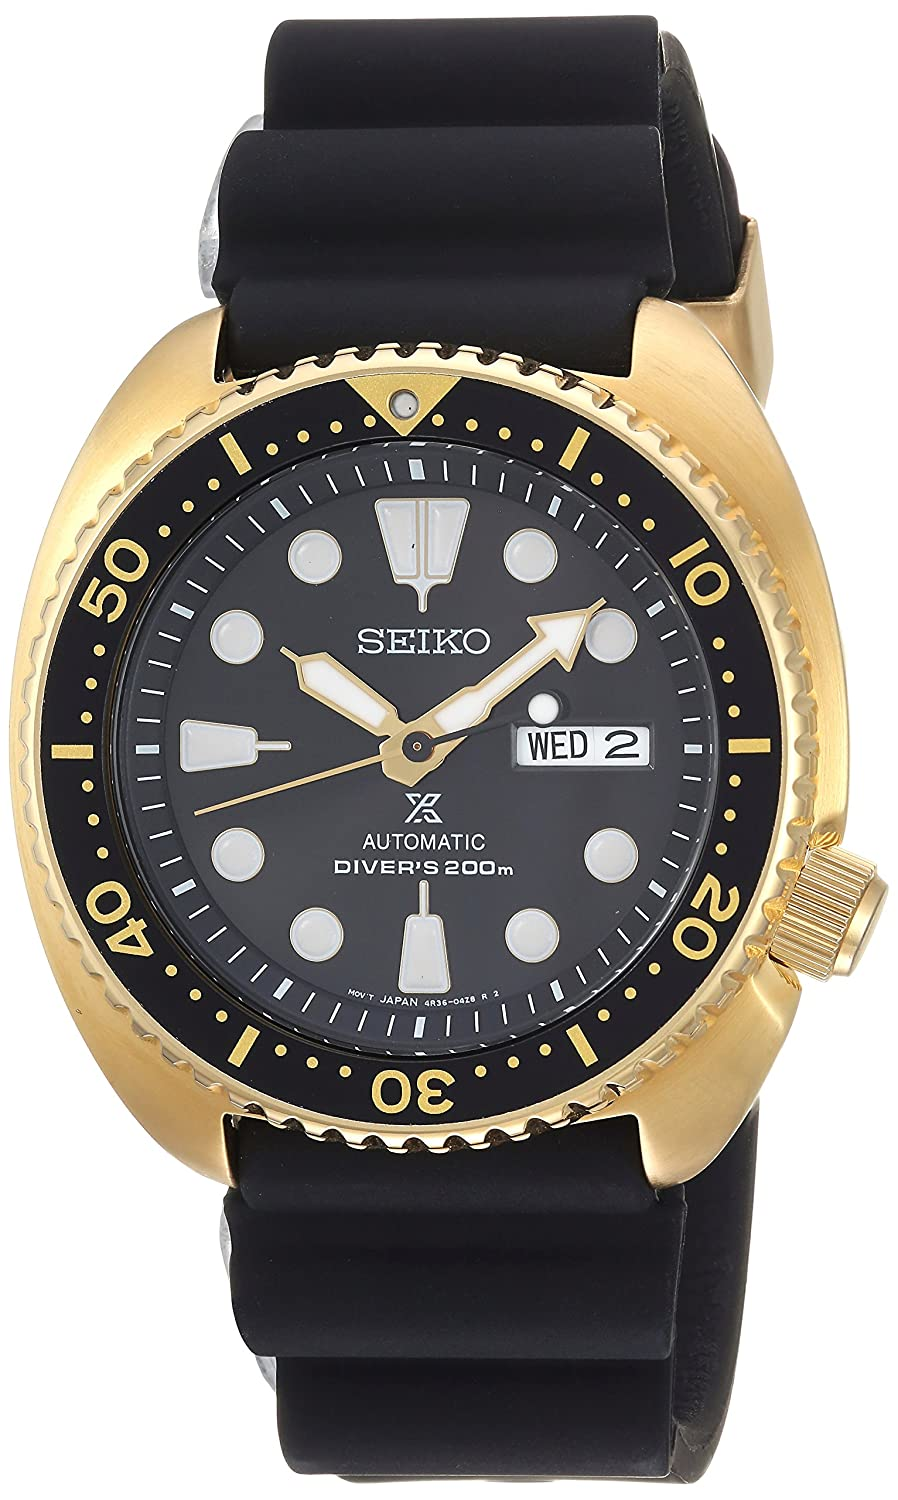 Seiko Men's Prospex Stainless Steel Automatic-self-Wind Watch with Silicone Strap, Black, 21 (Model: SRPC44